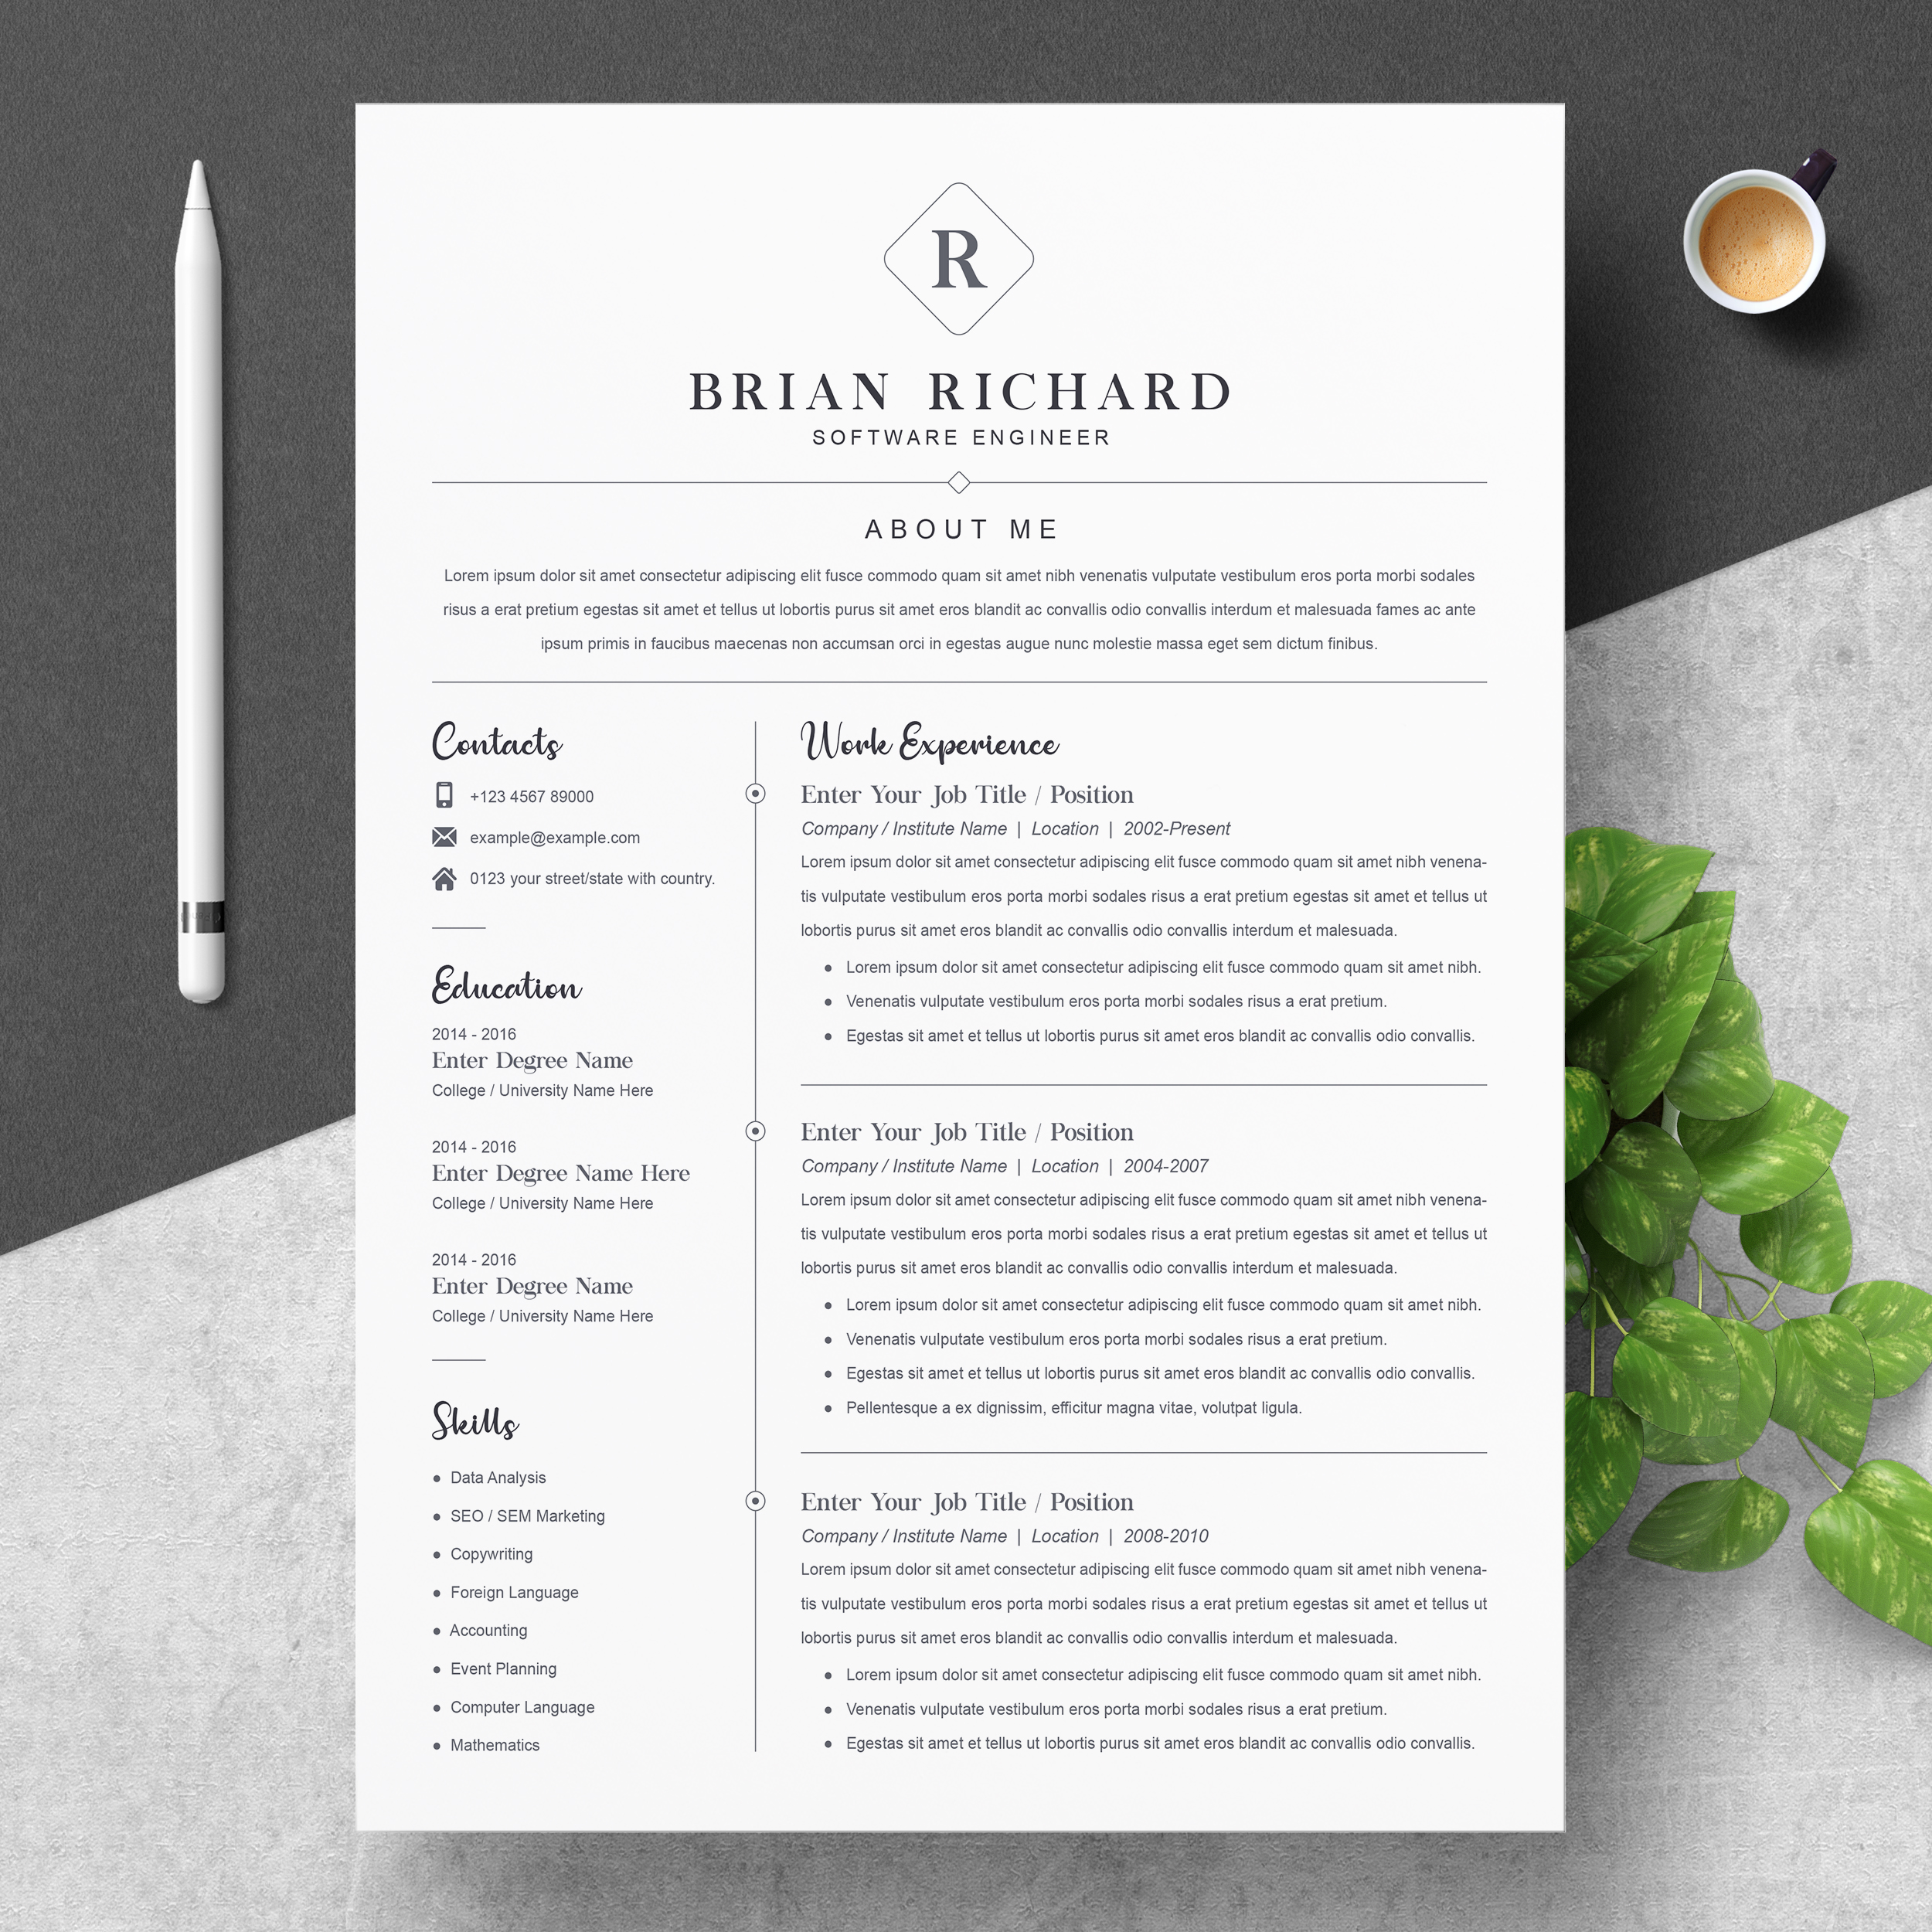 Software Engineer Resume 2021